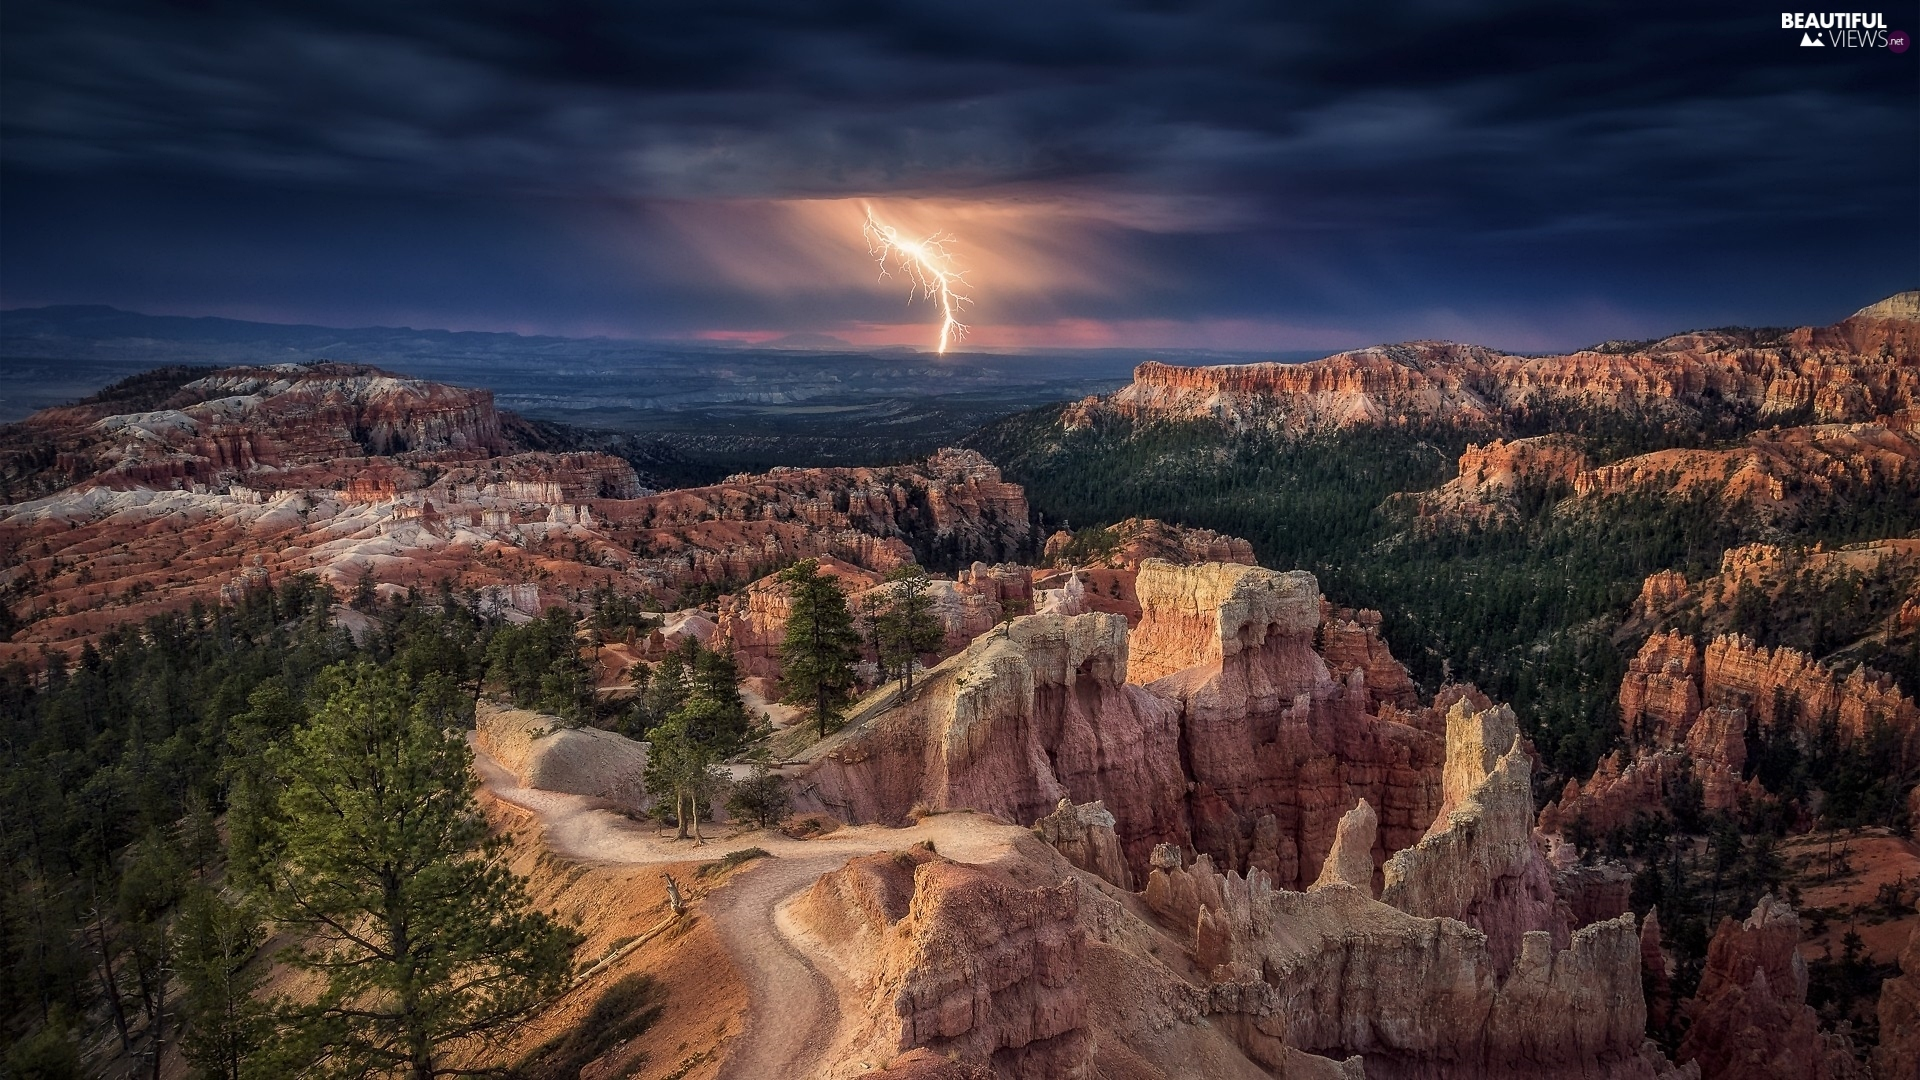 canyon, Utah State, Storm, Bryce Canyon National Park, The United States, lightning, rocks